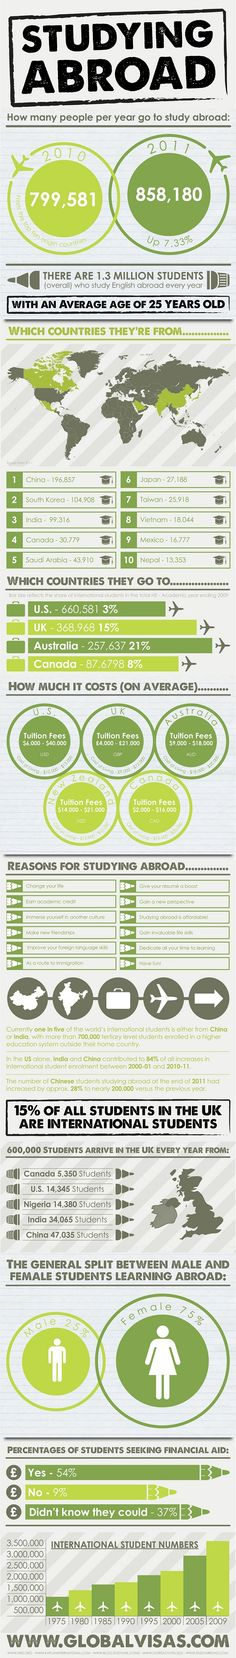 Studying Abroad - How Many People Per Year Go to Study Abroad (infographics)